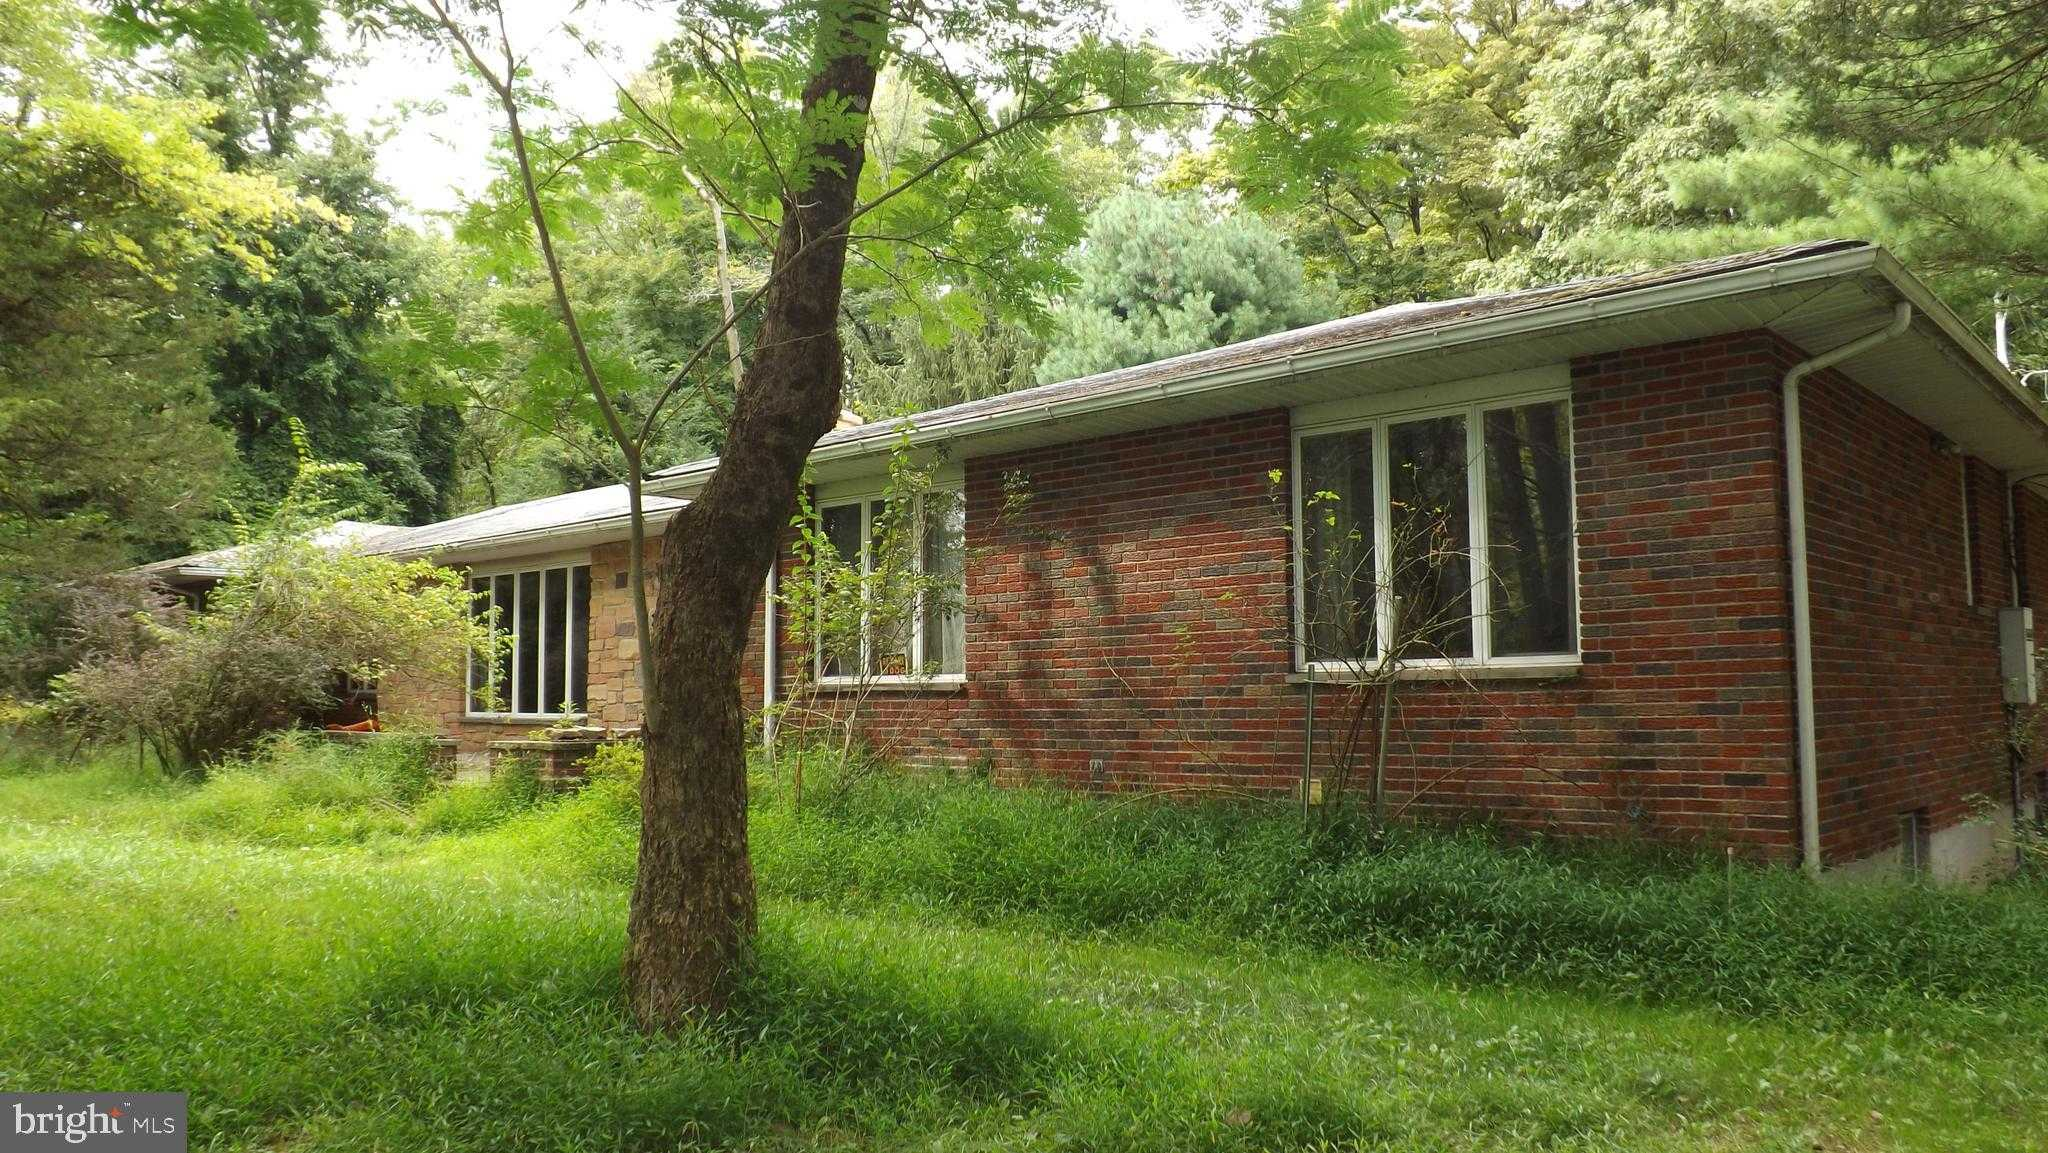 $289,000 - 4Br/3Ba -  for Sale in None Available, Erwinna